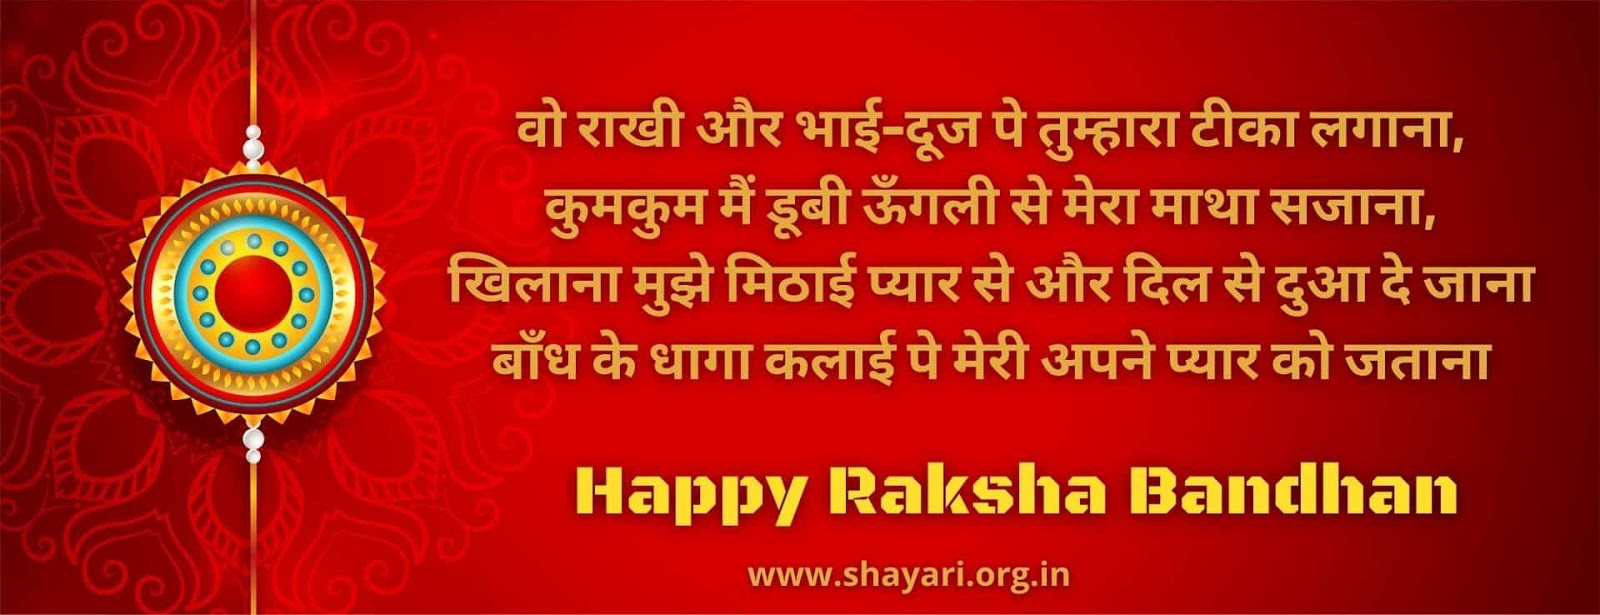 Latest 111+ Raksha Bandhan Shayari  In Hindi 2020